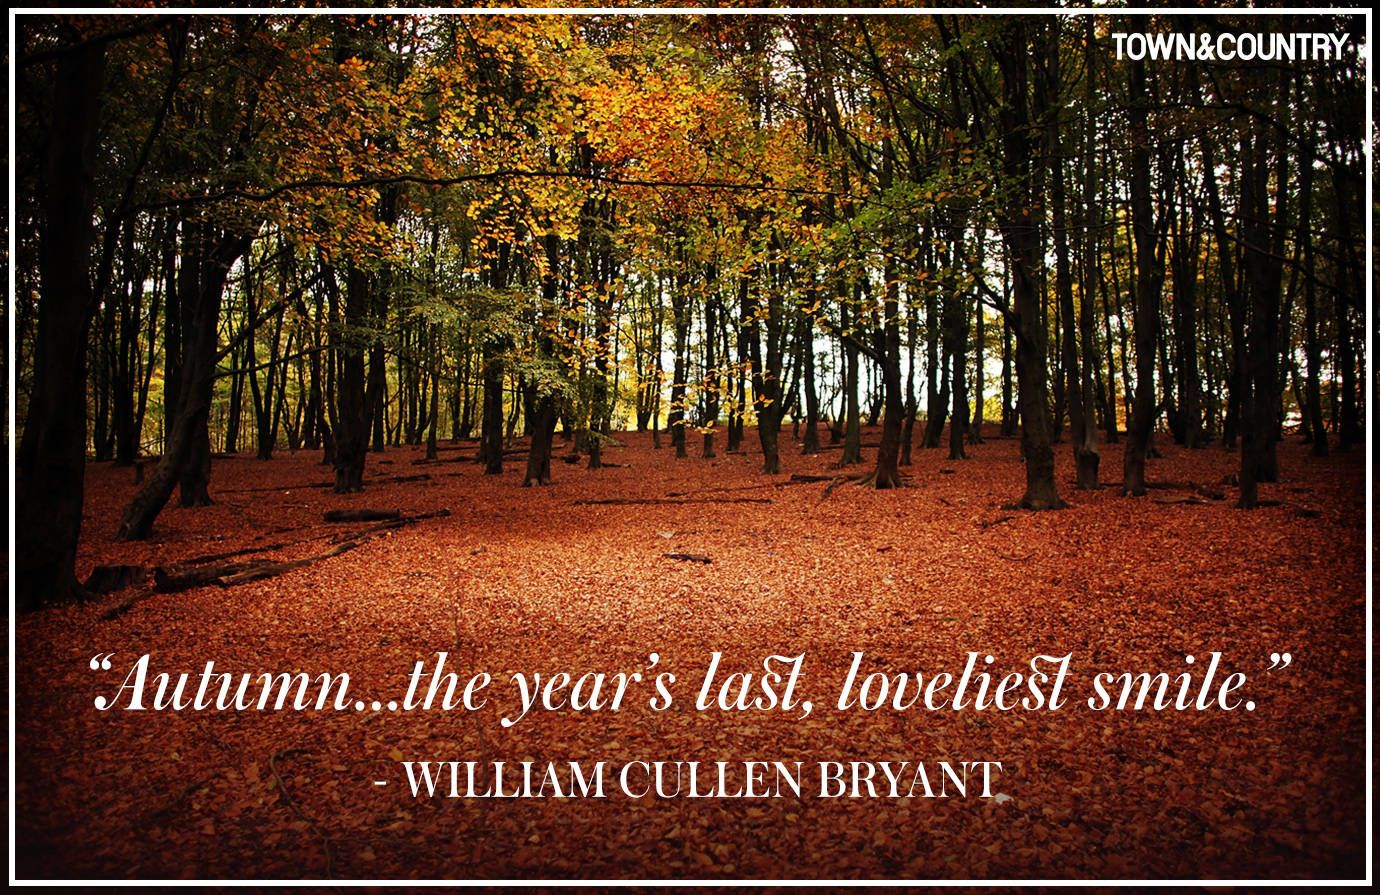 Fall Quotes About Love 12 Inspiring Fall Quotes  Best Quotes & Sayings About Autumn